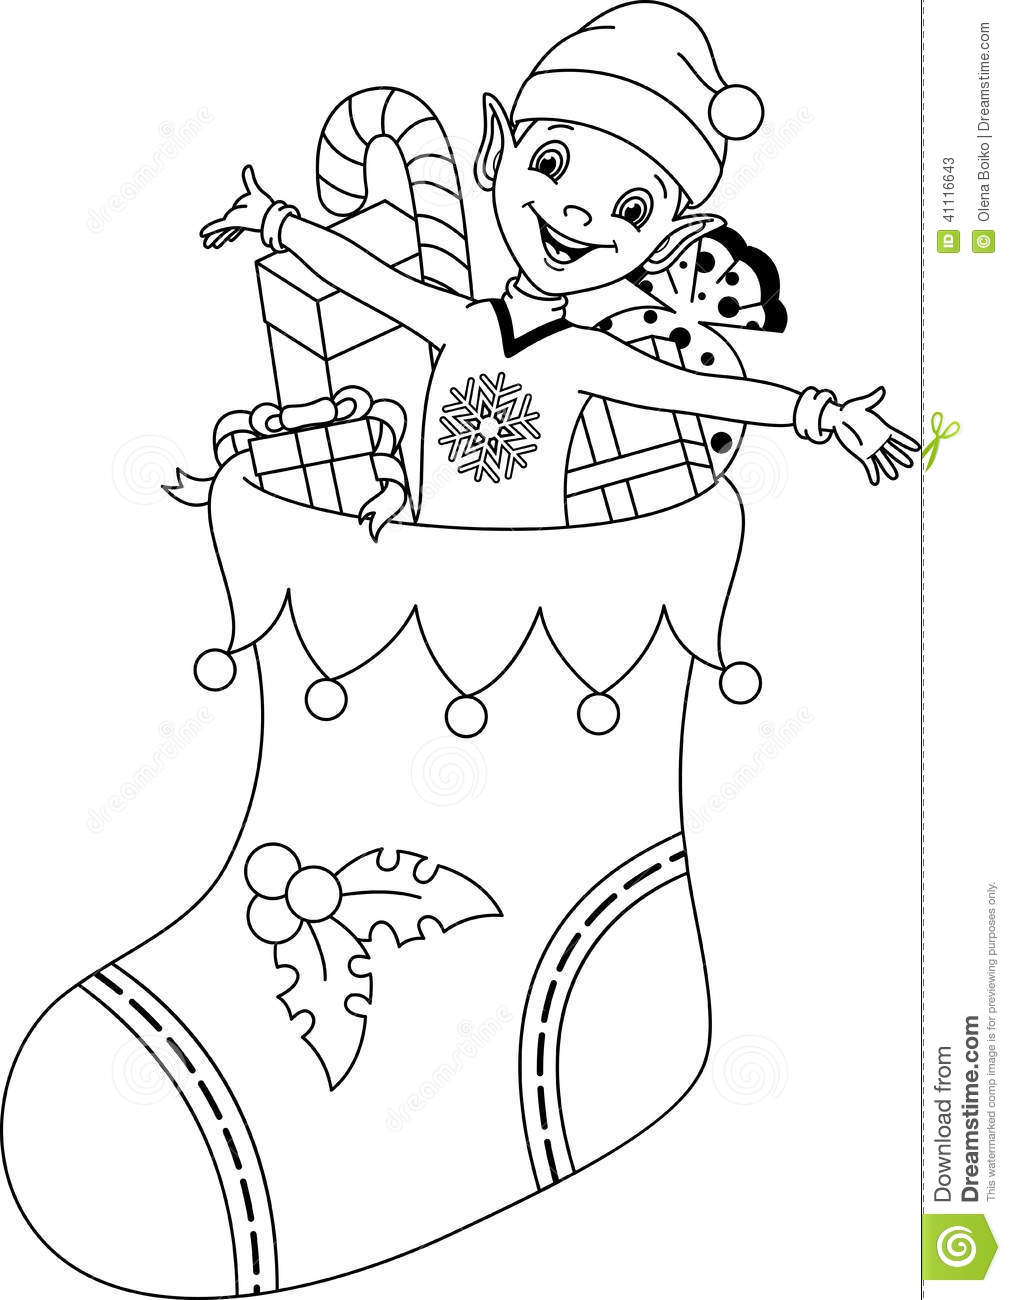 660 Top Cartoon Elf Coloring Pages Images & Pictures In HD